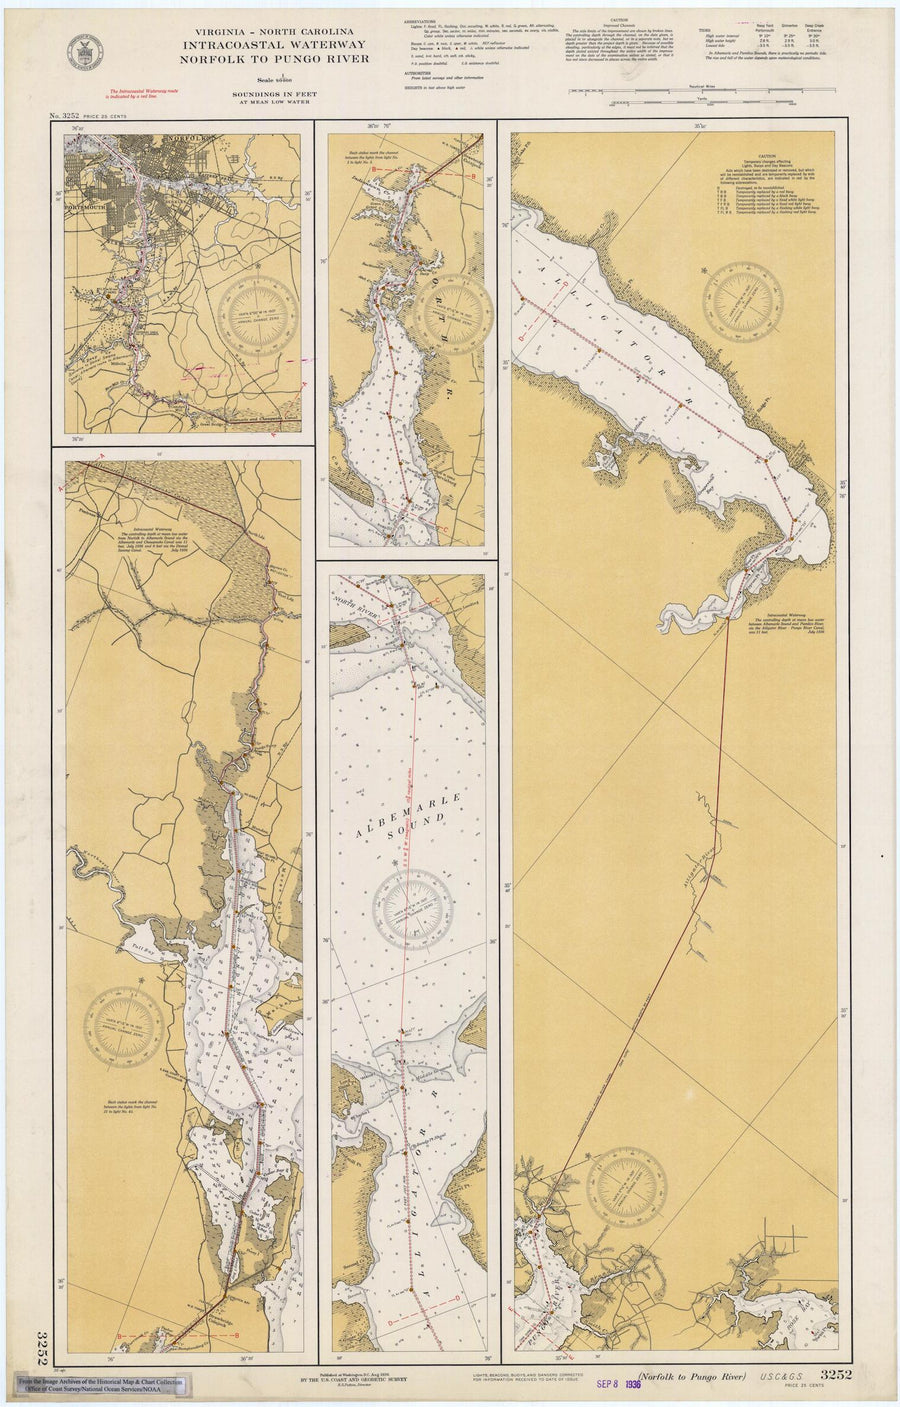 Norfolk to Pungo River - Intracoastal Waterway Map - 1936